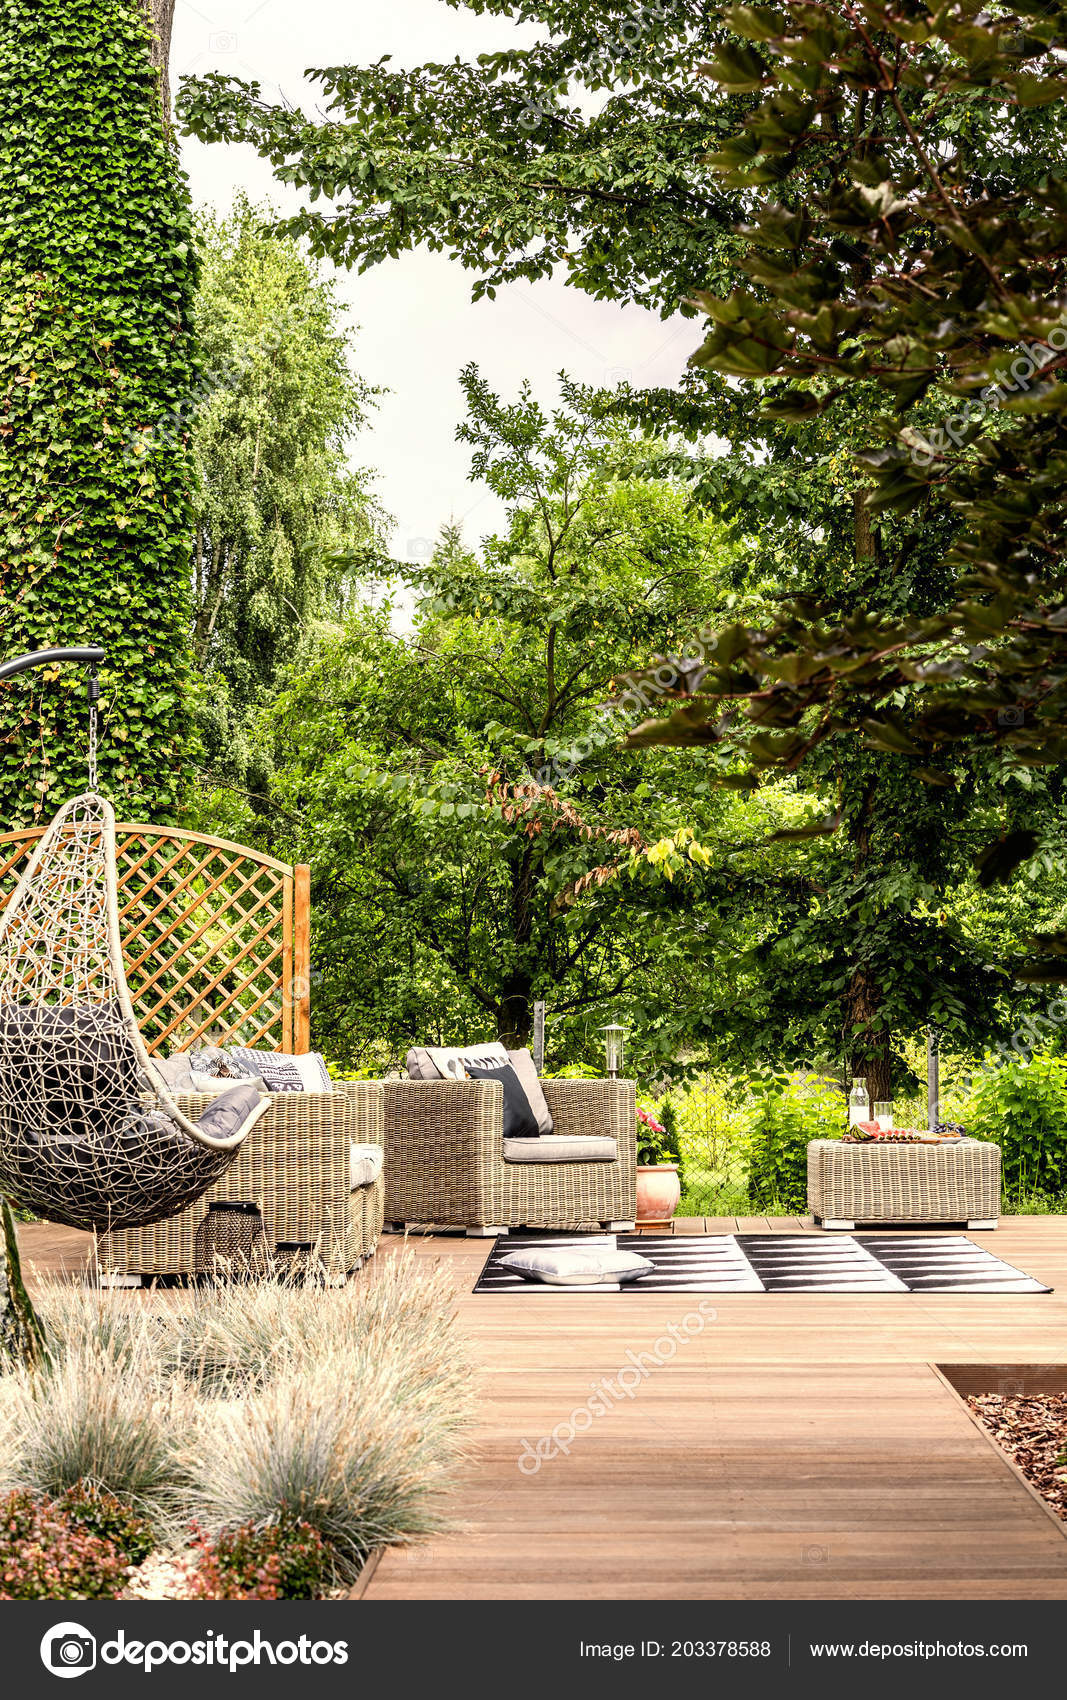 hanging chairs garden furniture kids outdoor lounge chair terrace trees summer real photo stock